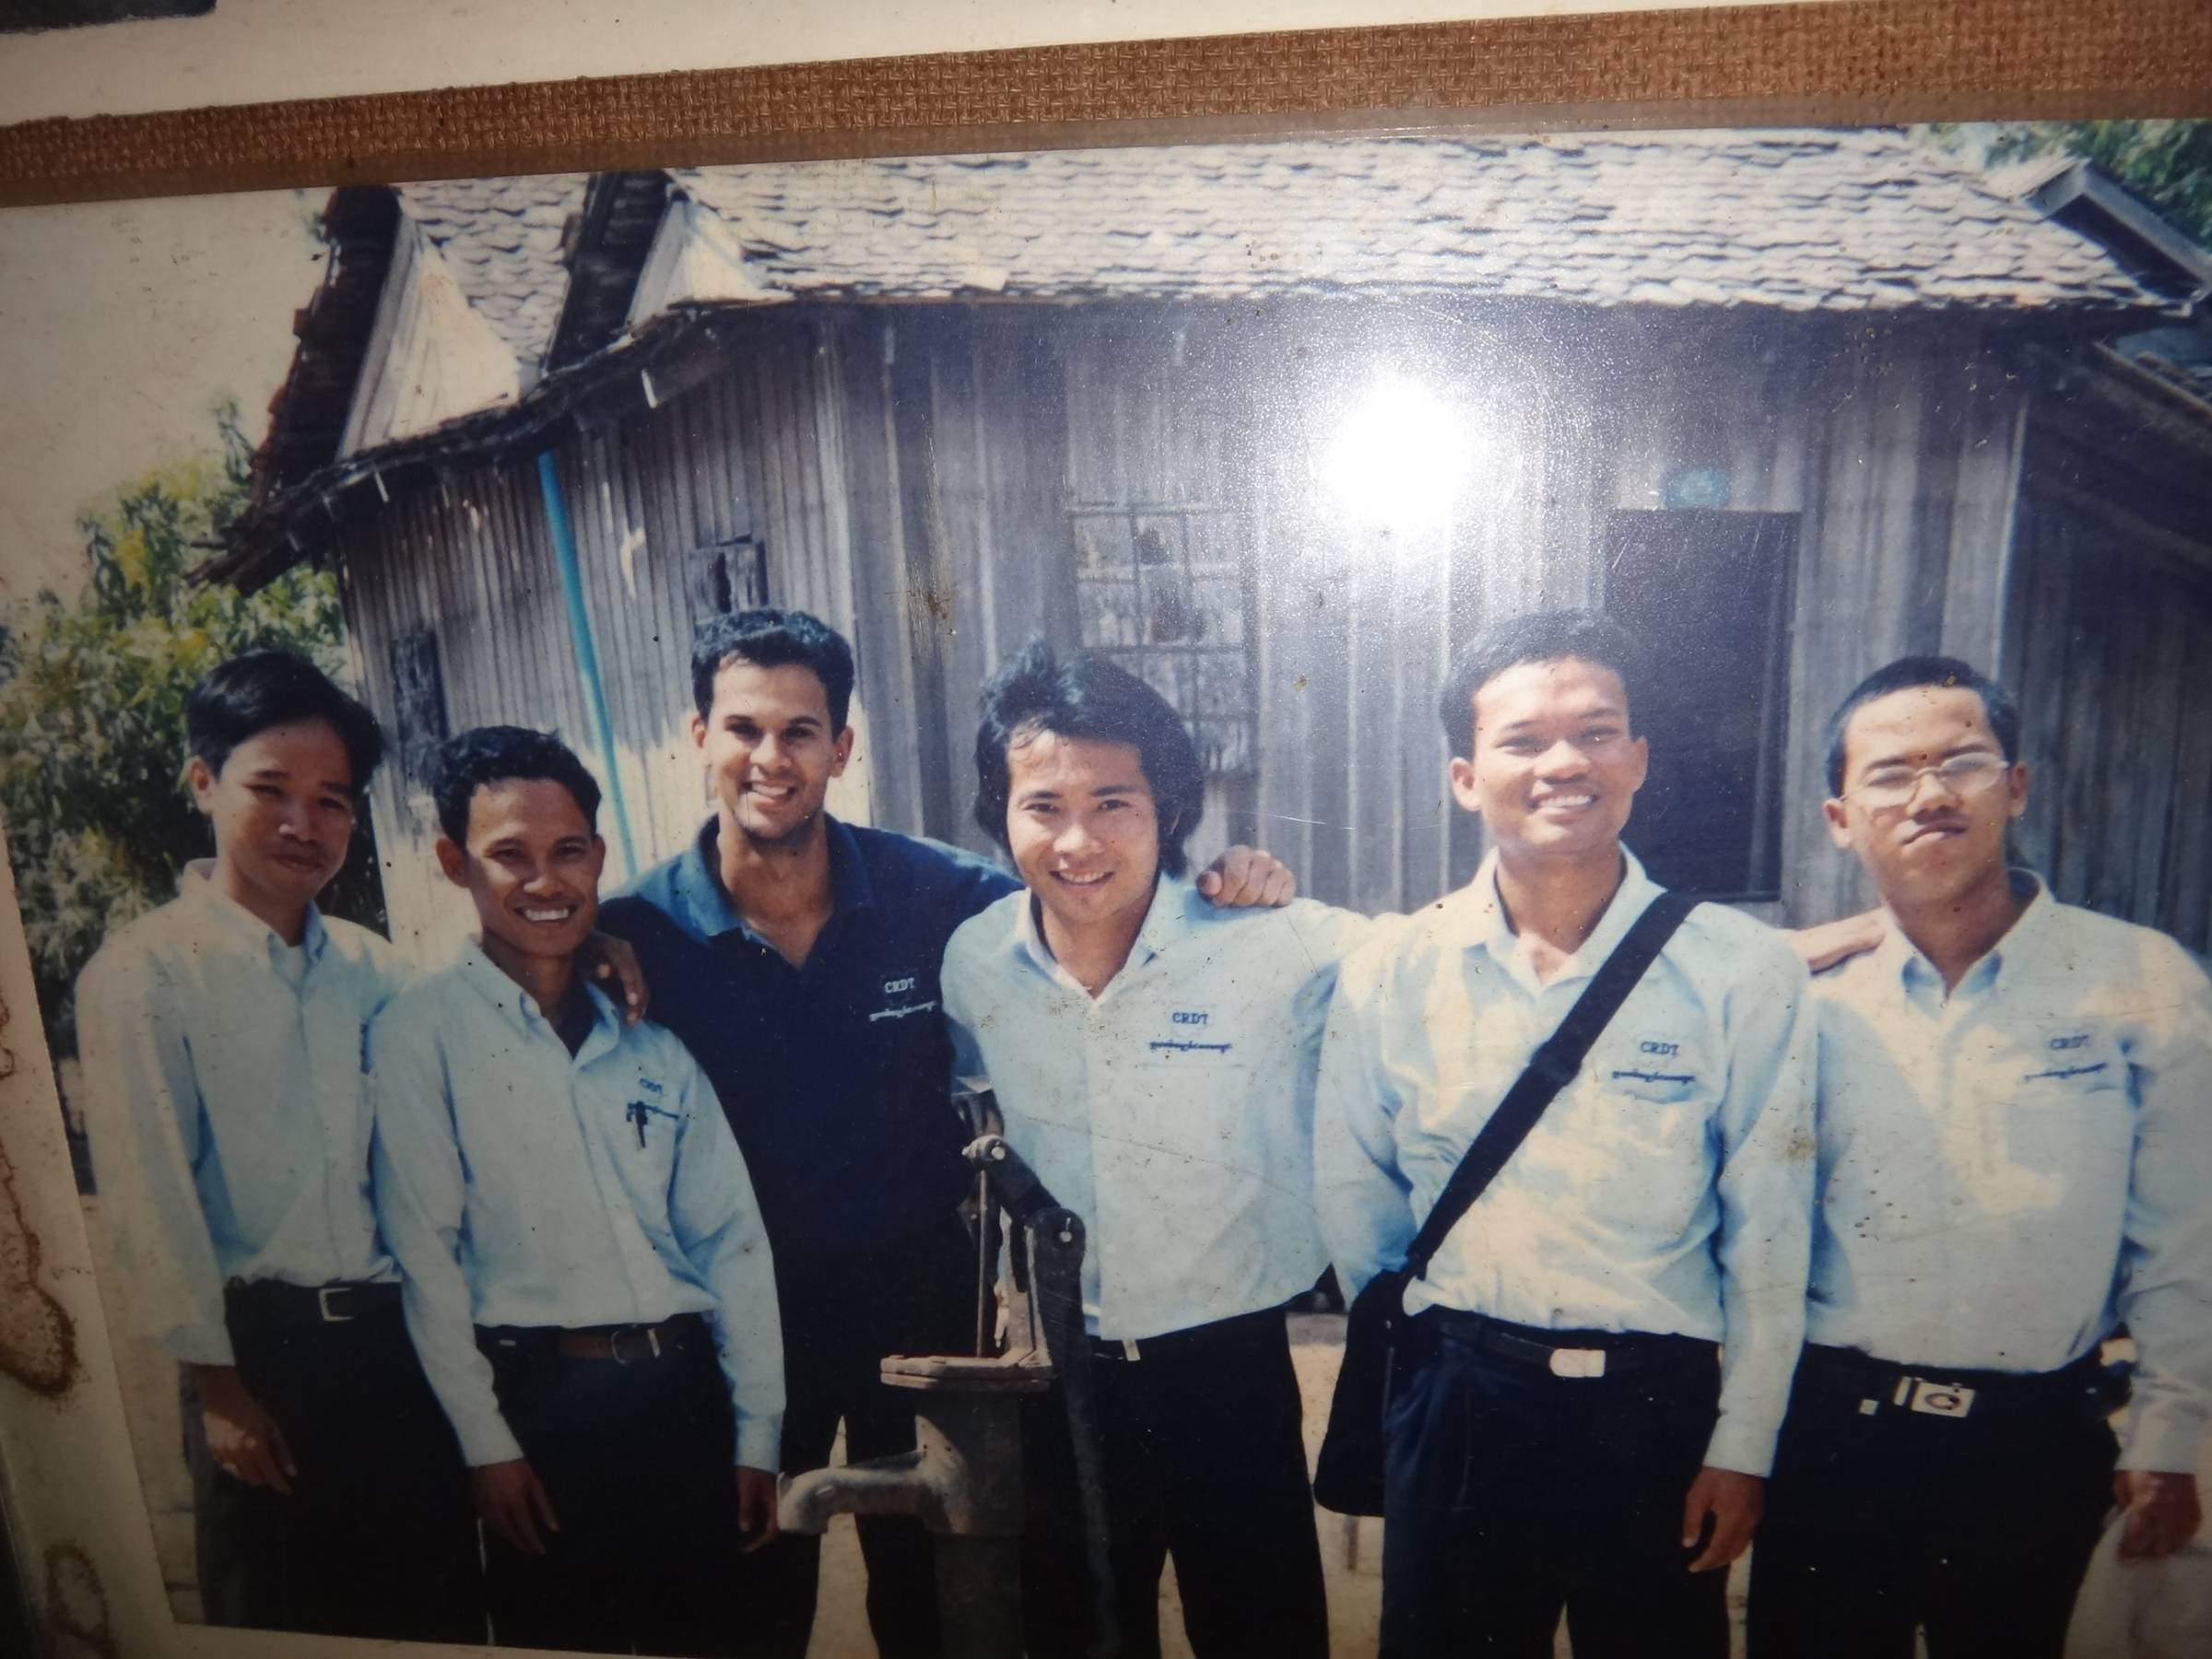 CRDT Founders during their university time in 2001-2002